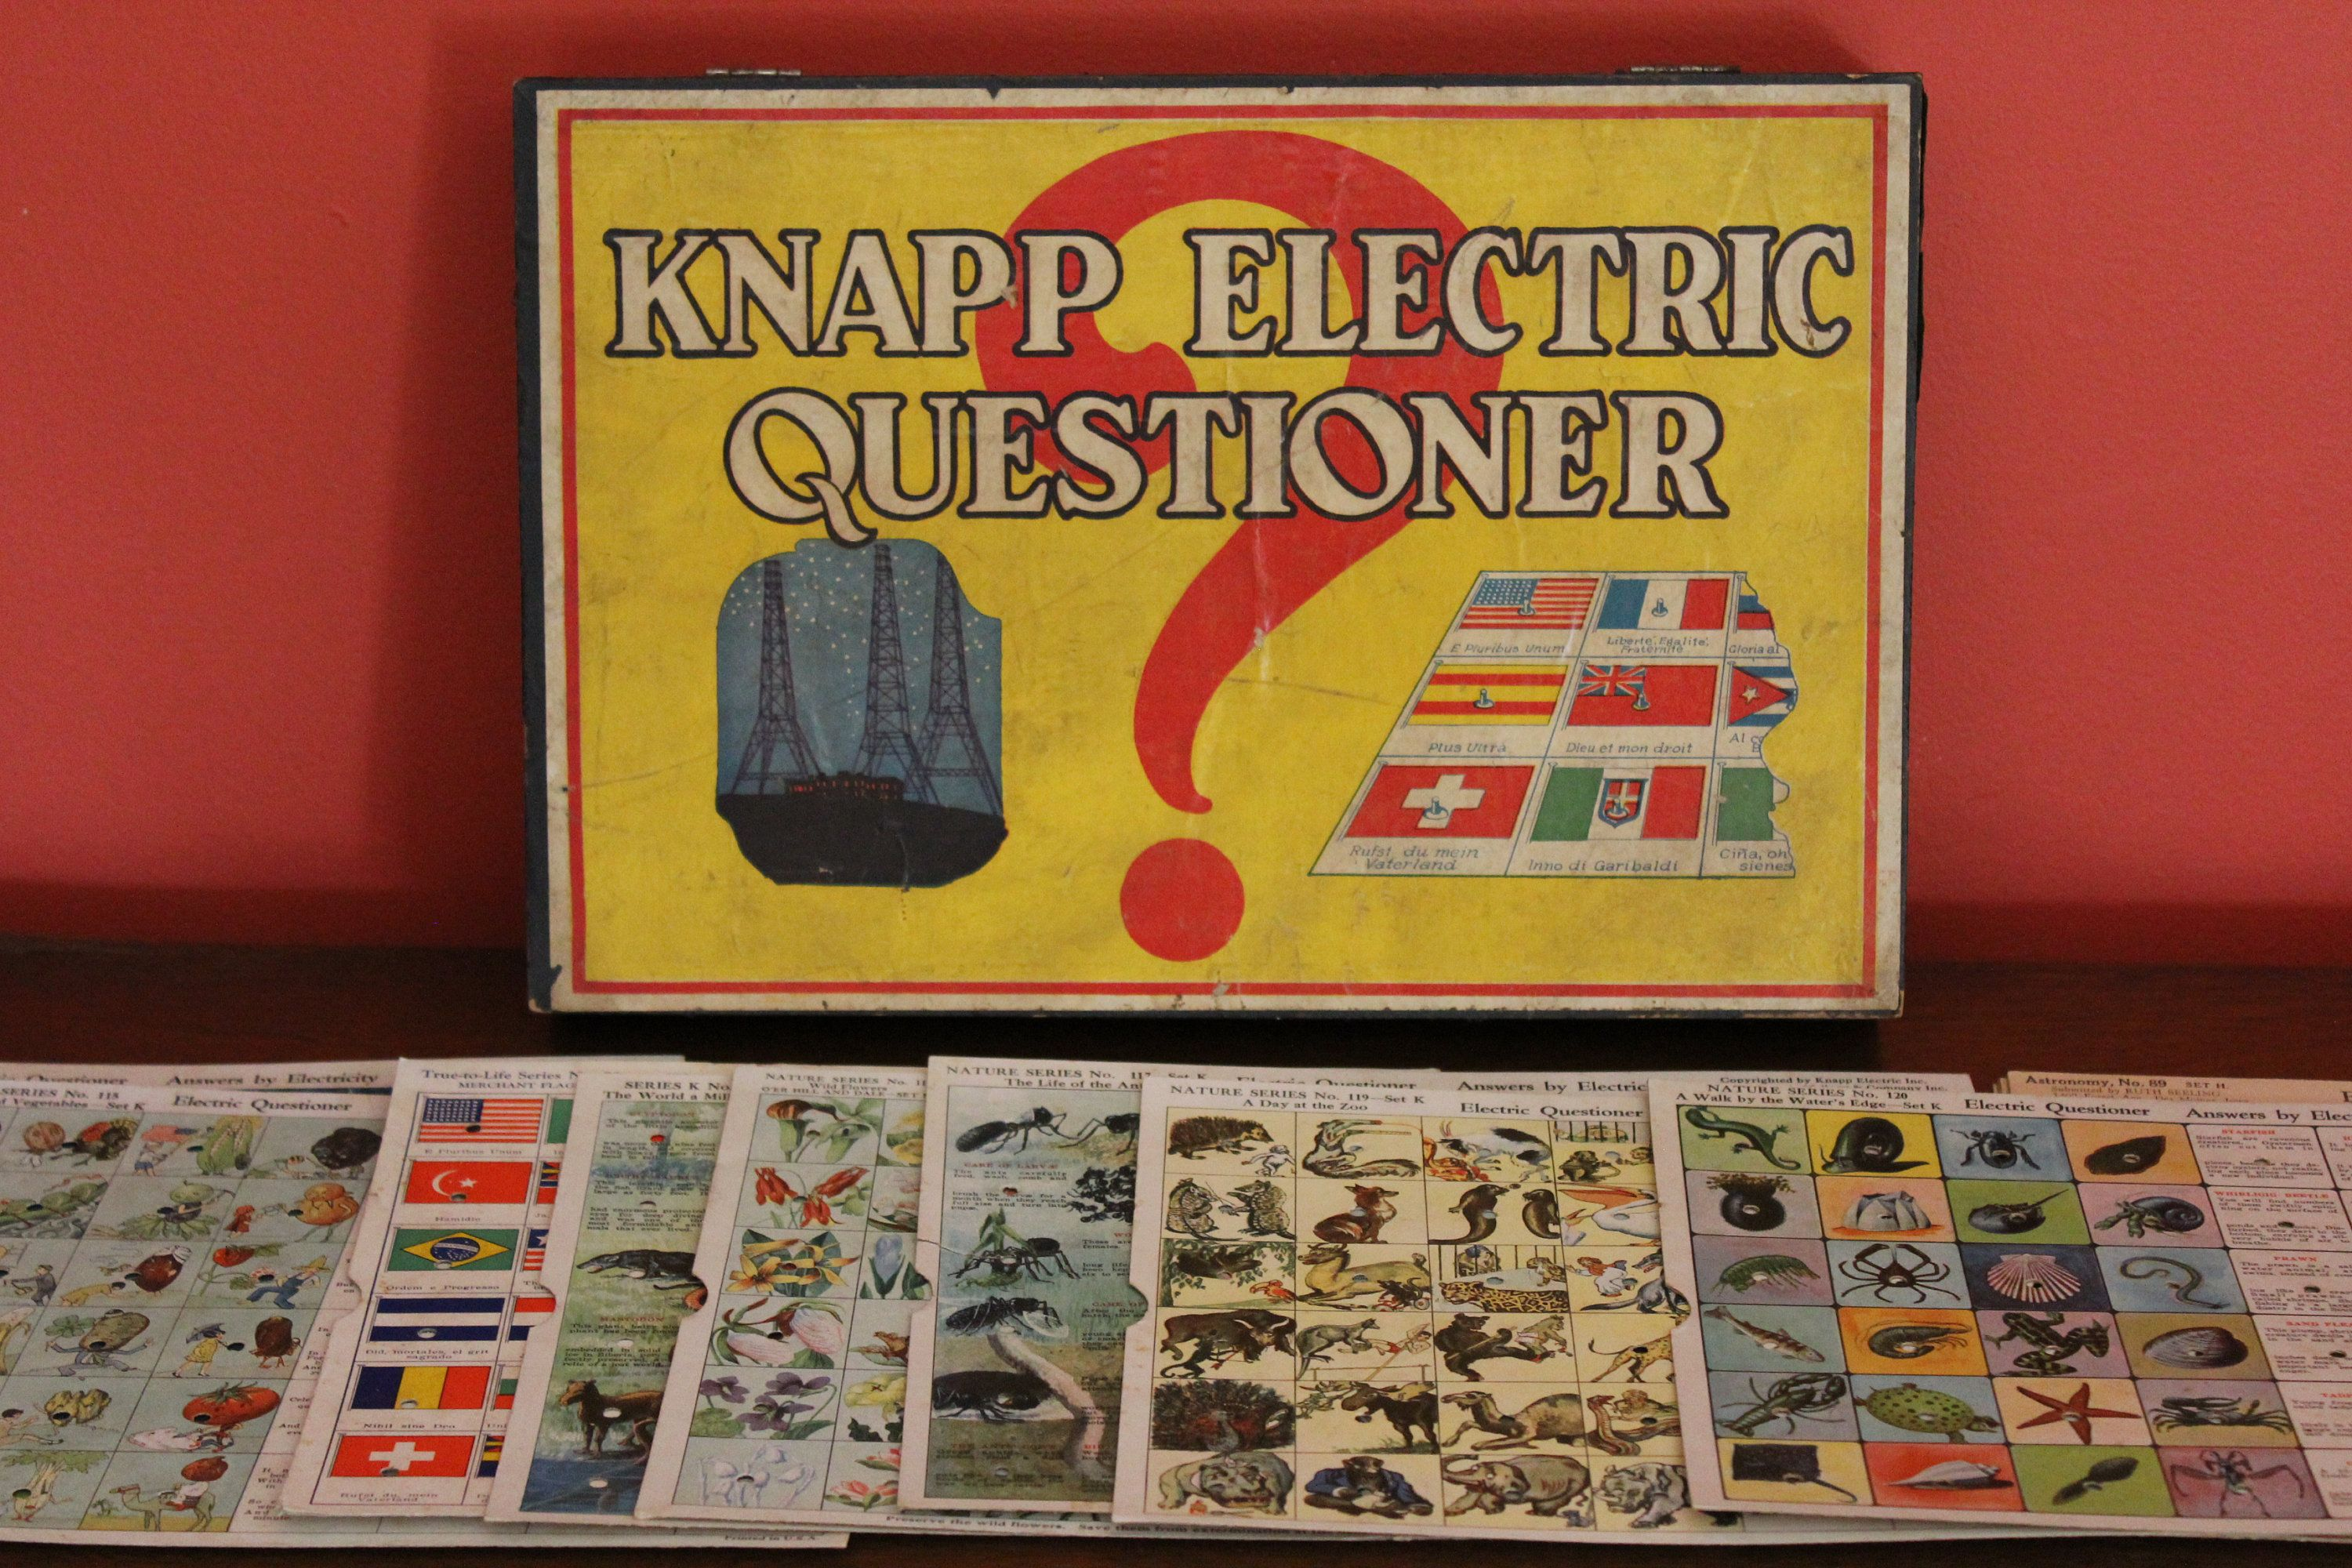 Vintage Question Game Graphic Cards Knapp Electric Questioner Teaching Game Colorful Cards And Box Craft Project Graphic Card Teaching Game Question Game